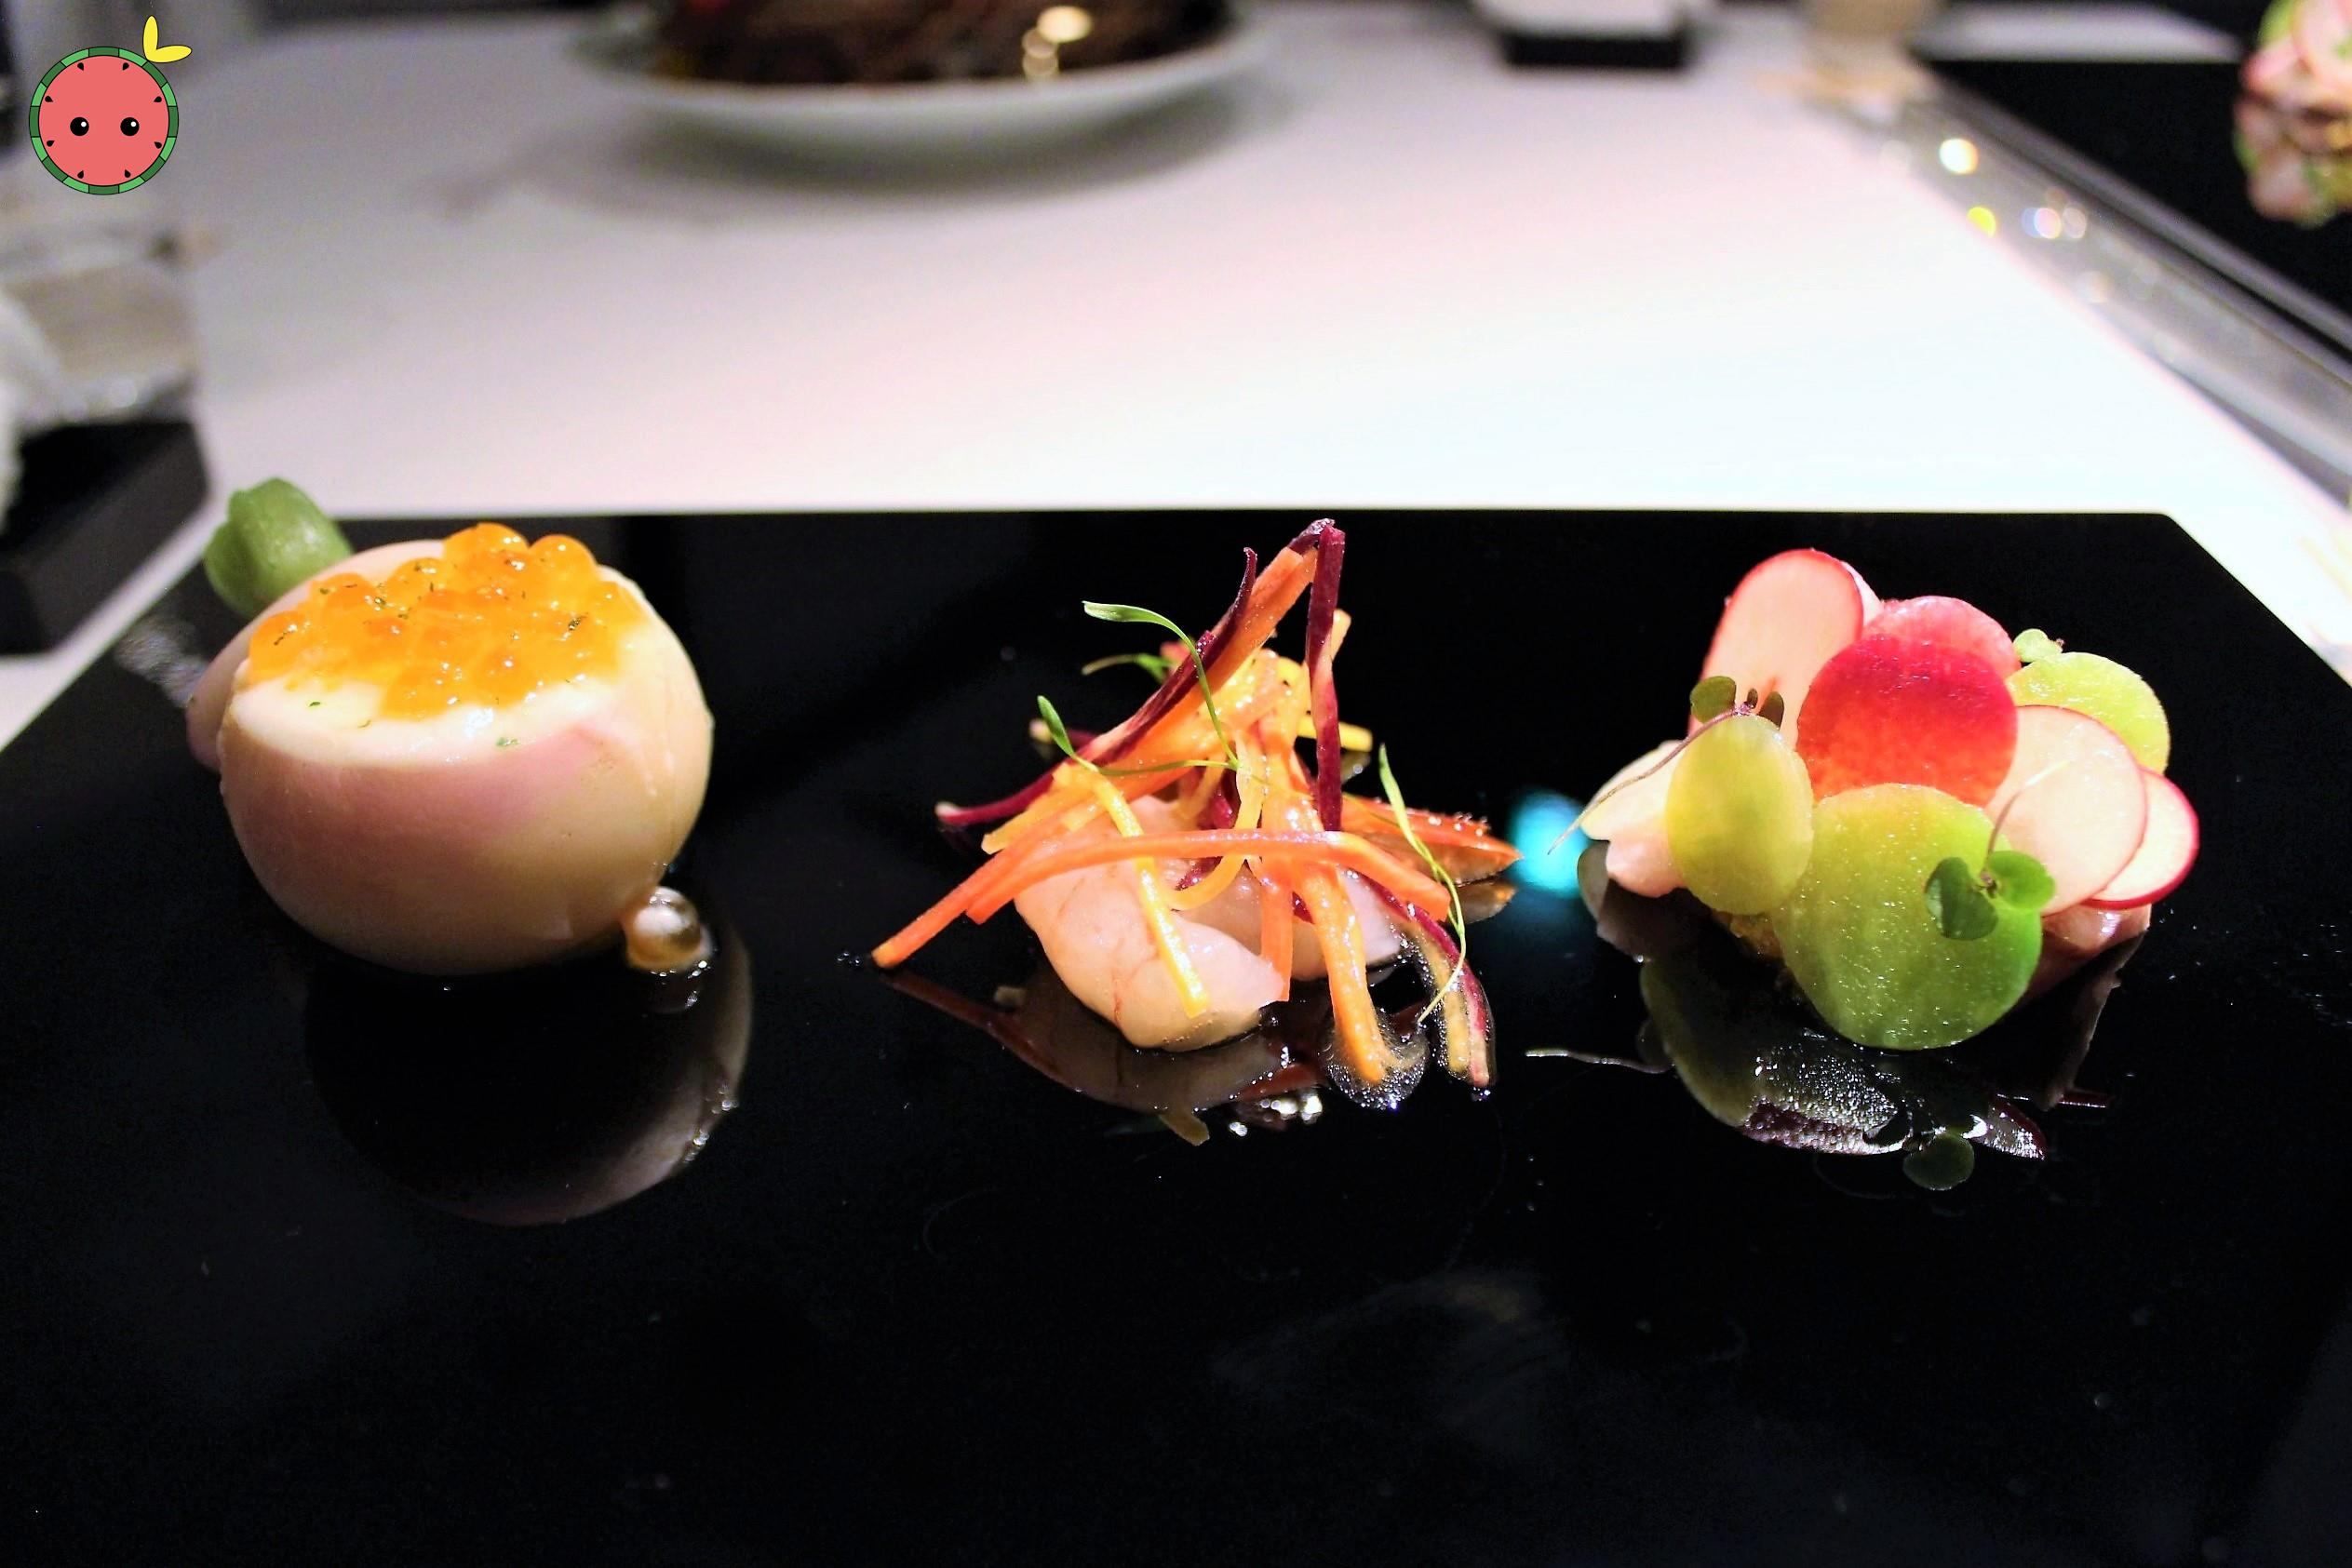 Salmon Roe & Hairy Crab in Turnip, Botan Shrimp, & Yellow Tail, Wasabi